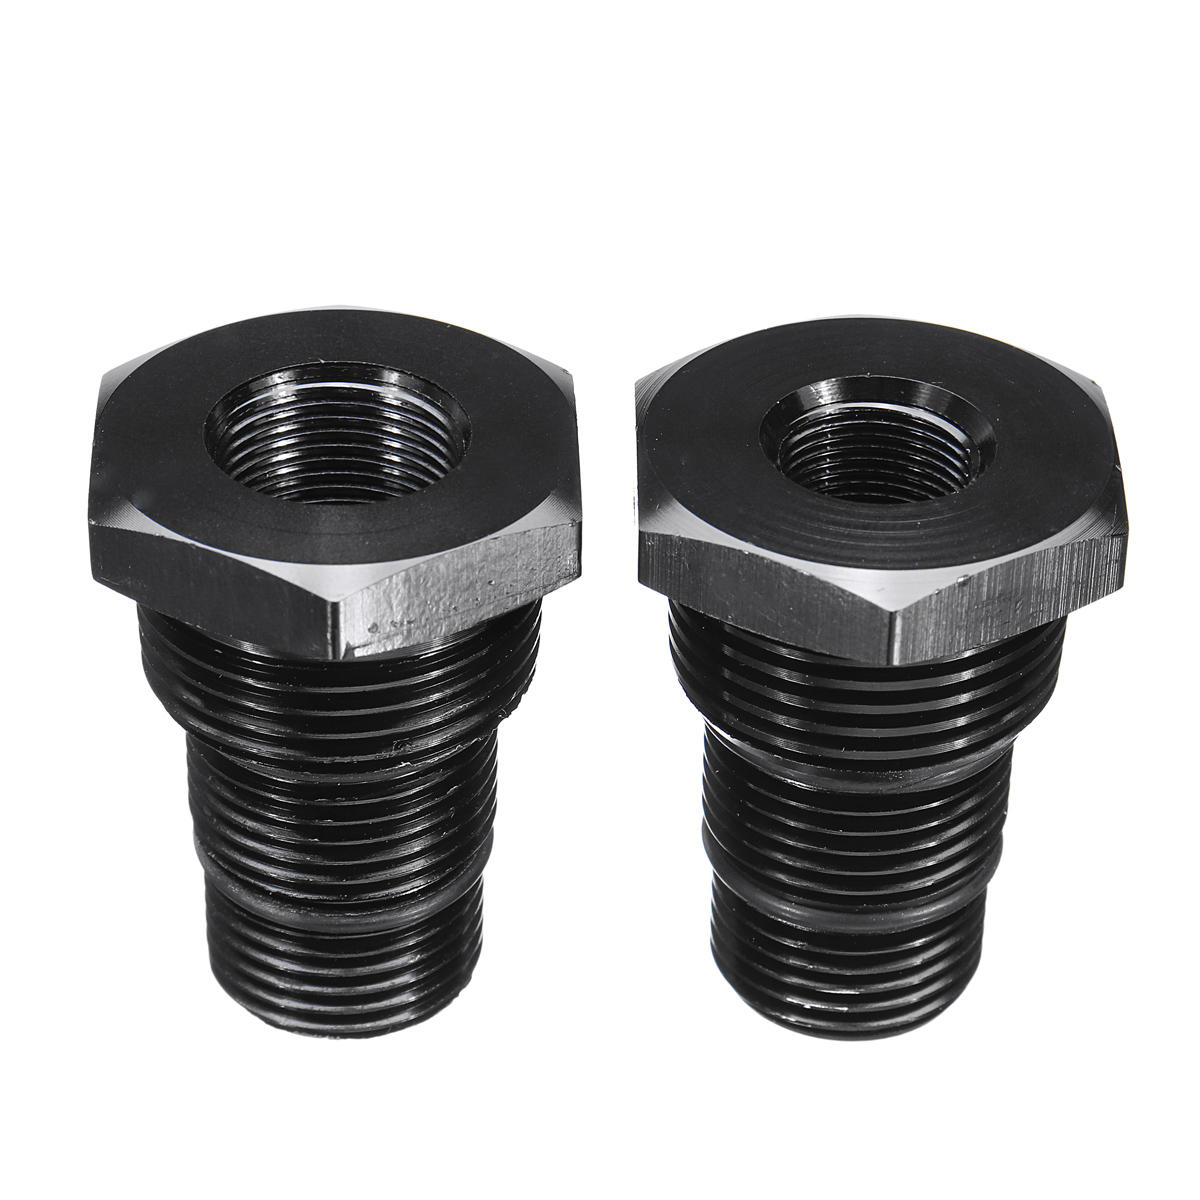 13//16 and 5//8-24 to 13//16-16 Threaded Adapter Oil Filter New 1//2-28 to 3//4-16